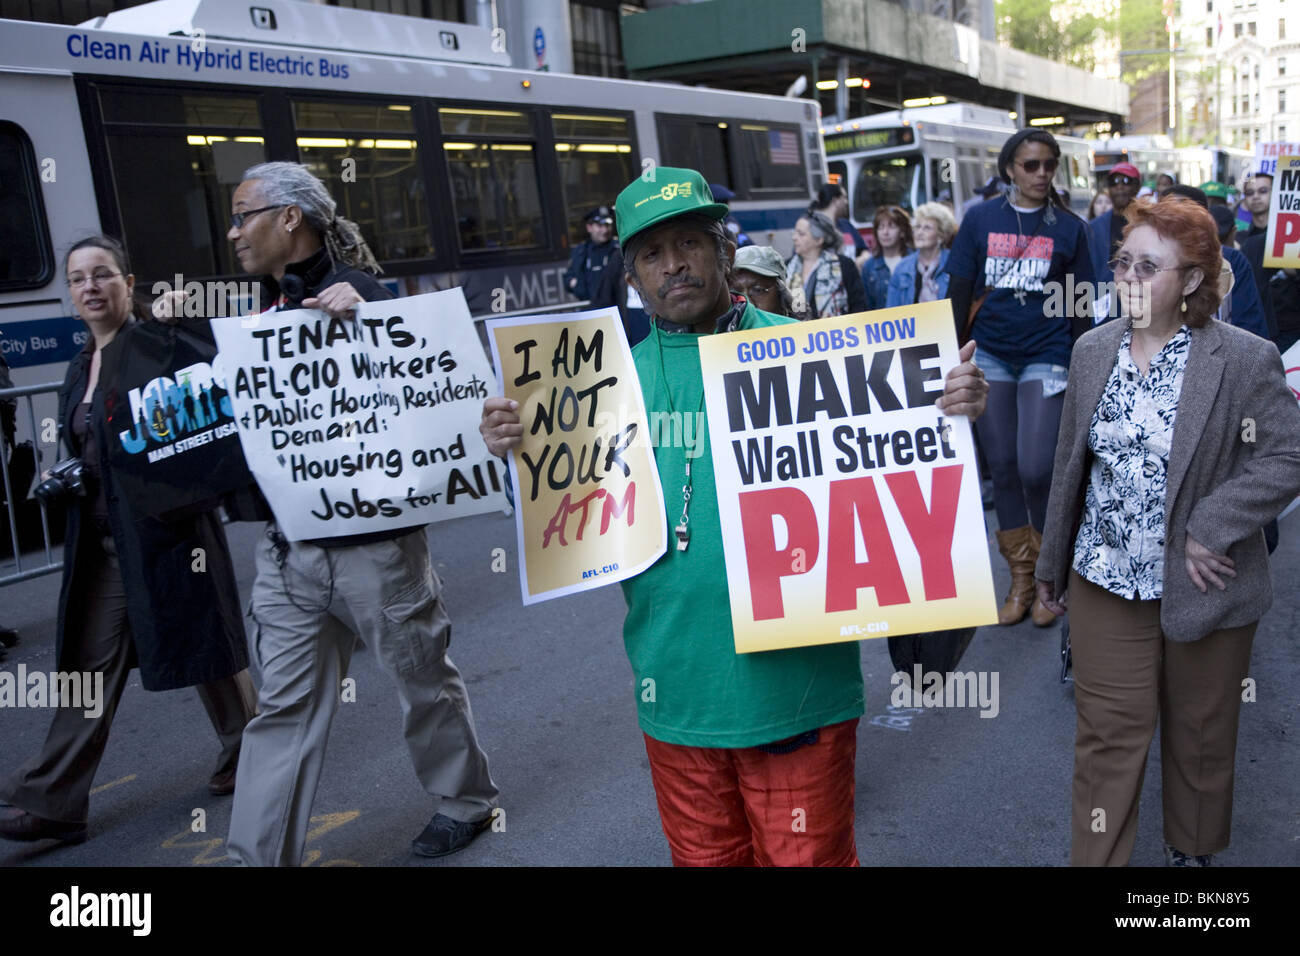 AFL-CIO and other Unions members march to Wall Street along Broadway demanding good jobs and that banks & Wall - Stock Image